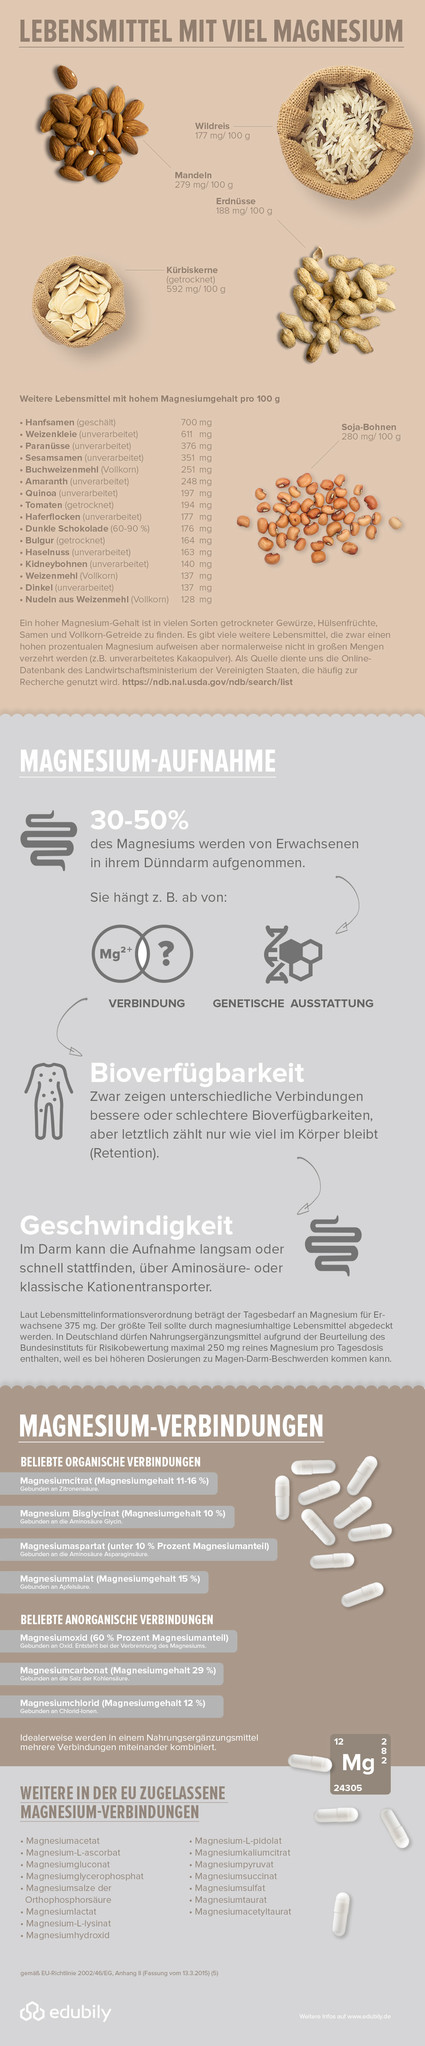 infografik magnesium formen in der bersicht edubily edubily shop. Black Bedroom Furniture Sets. Home Design Ideas